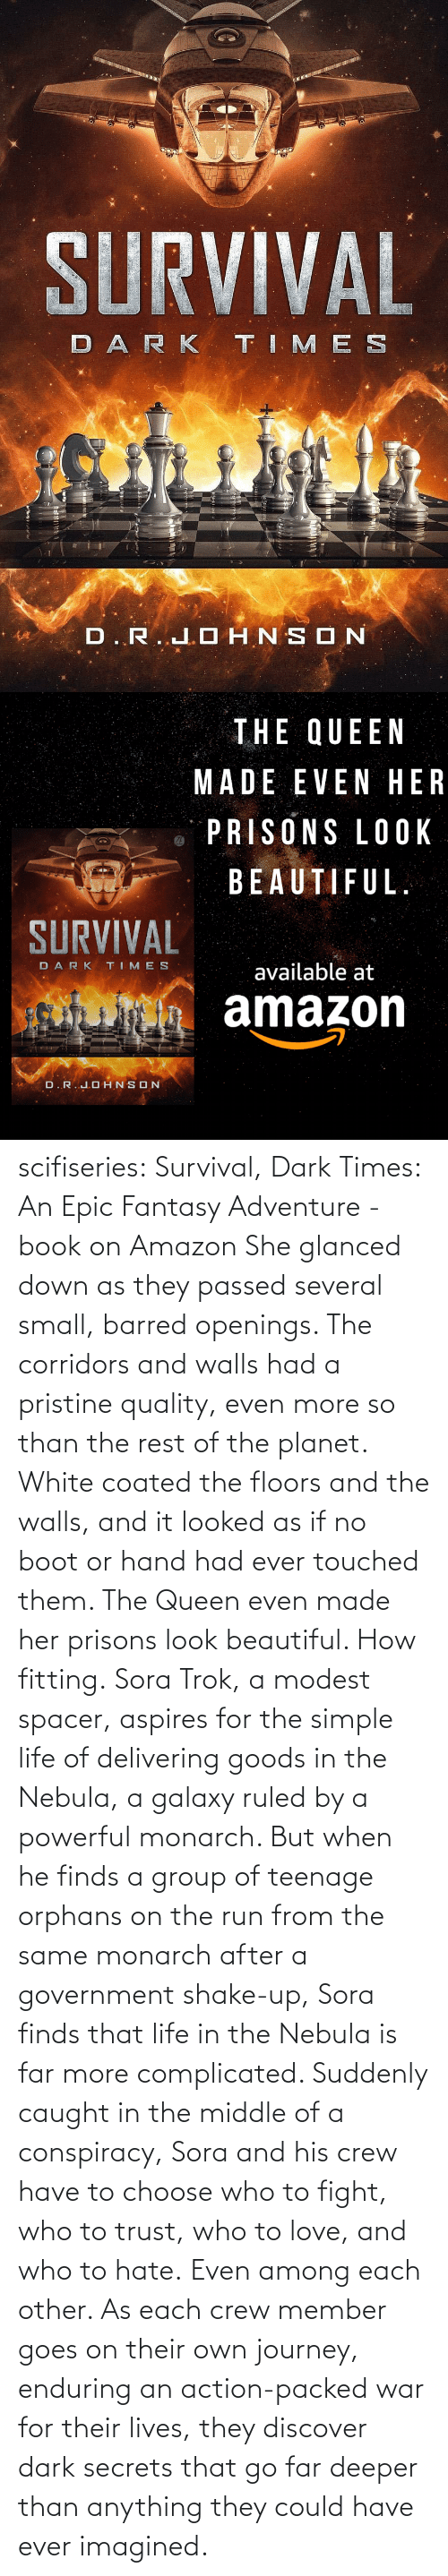 teenage: scifiseries: Survival, Dark Times: An Epic Fantasy Adventure - book on Amazon  She glanced down as they  passed several small, barred openings. The corridors and walls had a  pristine quality, even more so than the rest of the planet. White coated  the floors and the walls, and it looked as if no boot or hand had ever  touched them.  The Queen even made her prisons look beautiful.  How fitting. Sora  Trok, a modest spacer, aspires for the simple life of delivering goods  in the Nebula, a galaxy ruled by a powerful monarch. But when he finds a  group of teenage orphans on the run from the same monarch after a  government shake-up, Sora finds that life in the Nebula is far more complicated.  Suddenly  caught in the middle of a conspiracy, Sora and his crew have to choose  who to fight, who to trust, who to love, and who to hate. Even among each other.  As  each crew member goes on their own journey, enduring an action-packed  war for their lives, they discover dark secrets that go far deeper than  anything they could have ever imagined.